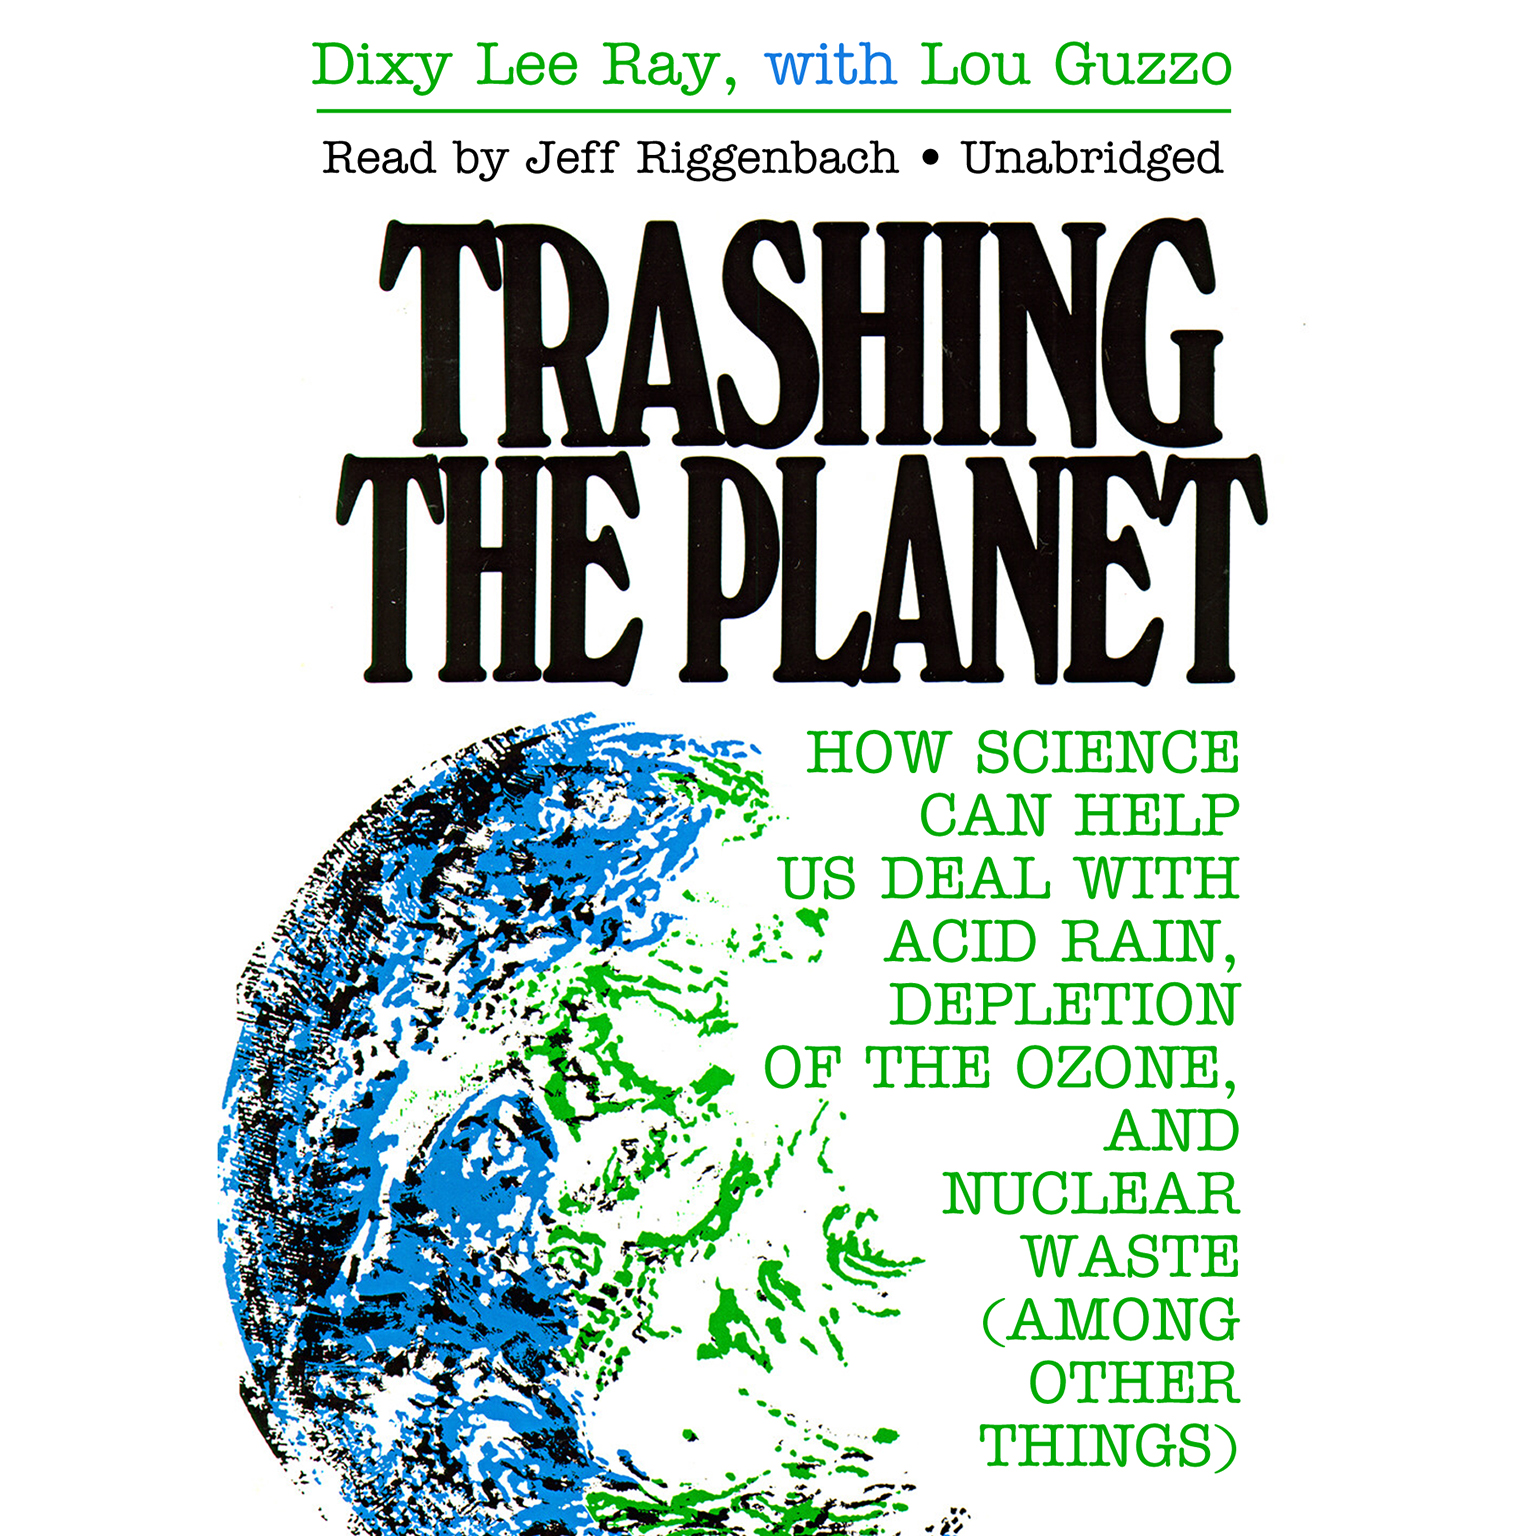 Printable Trashing the Planet: How Science Can Help Us Deal with Acid Rain, Depletion of the Ozone, and Nuclear Waste (among Other Things) Audiobook Cover Art